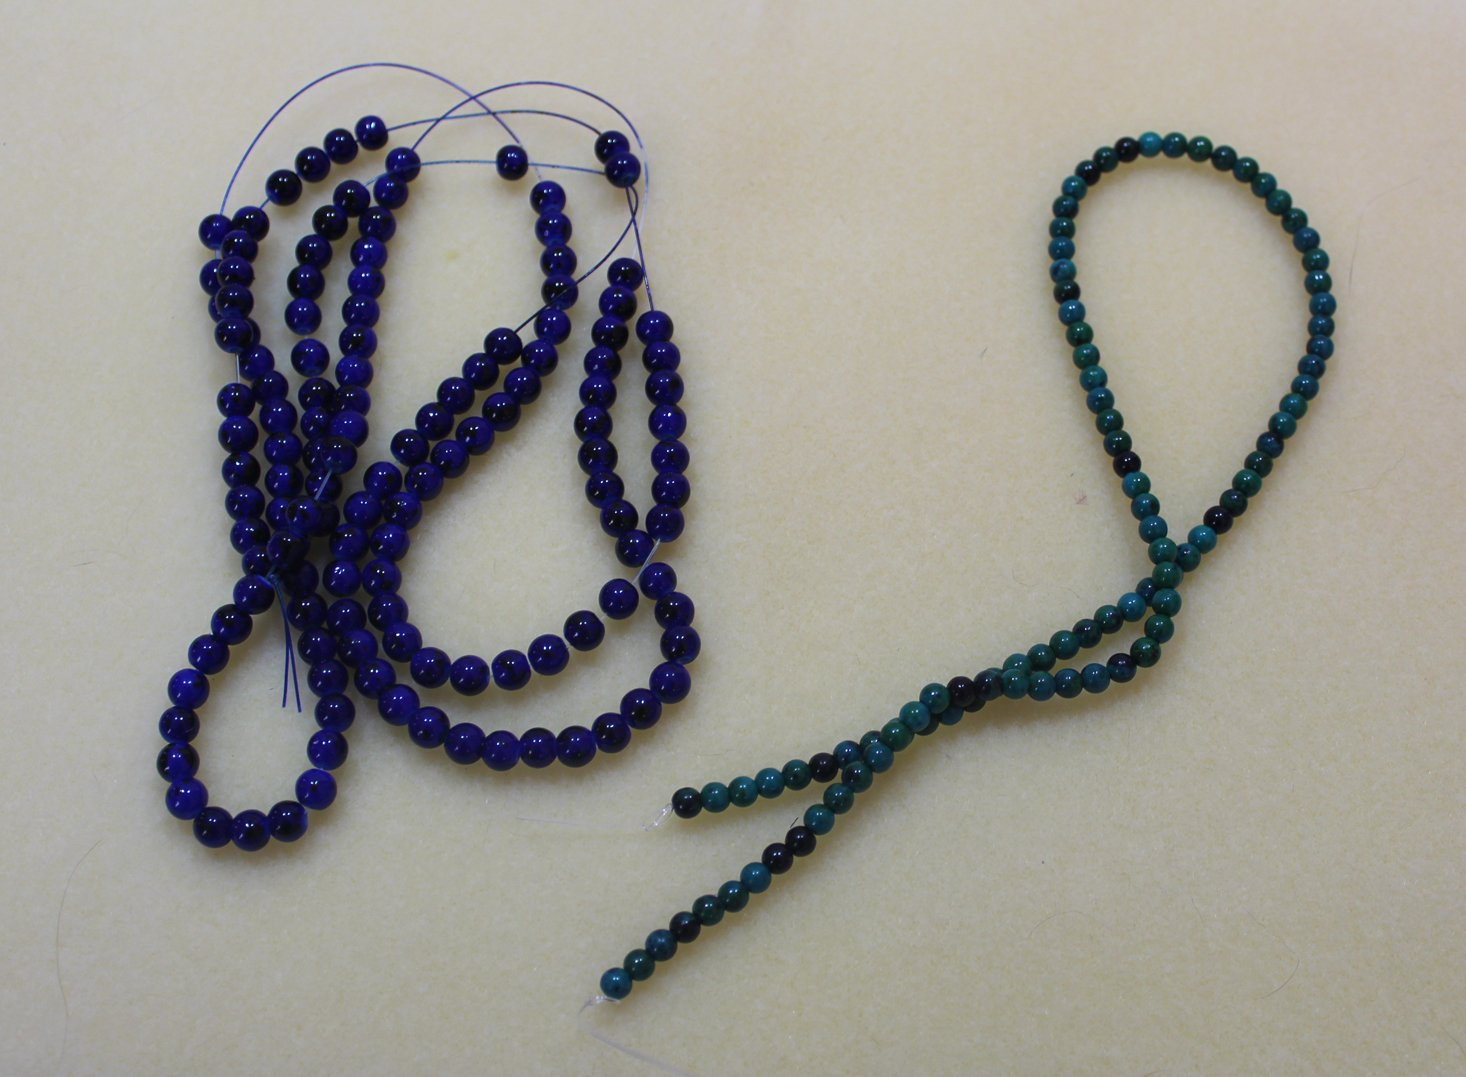 blueberry-cove-beads-march-2017-blue-strand